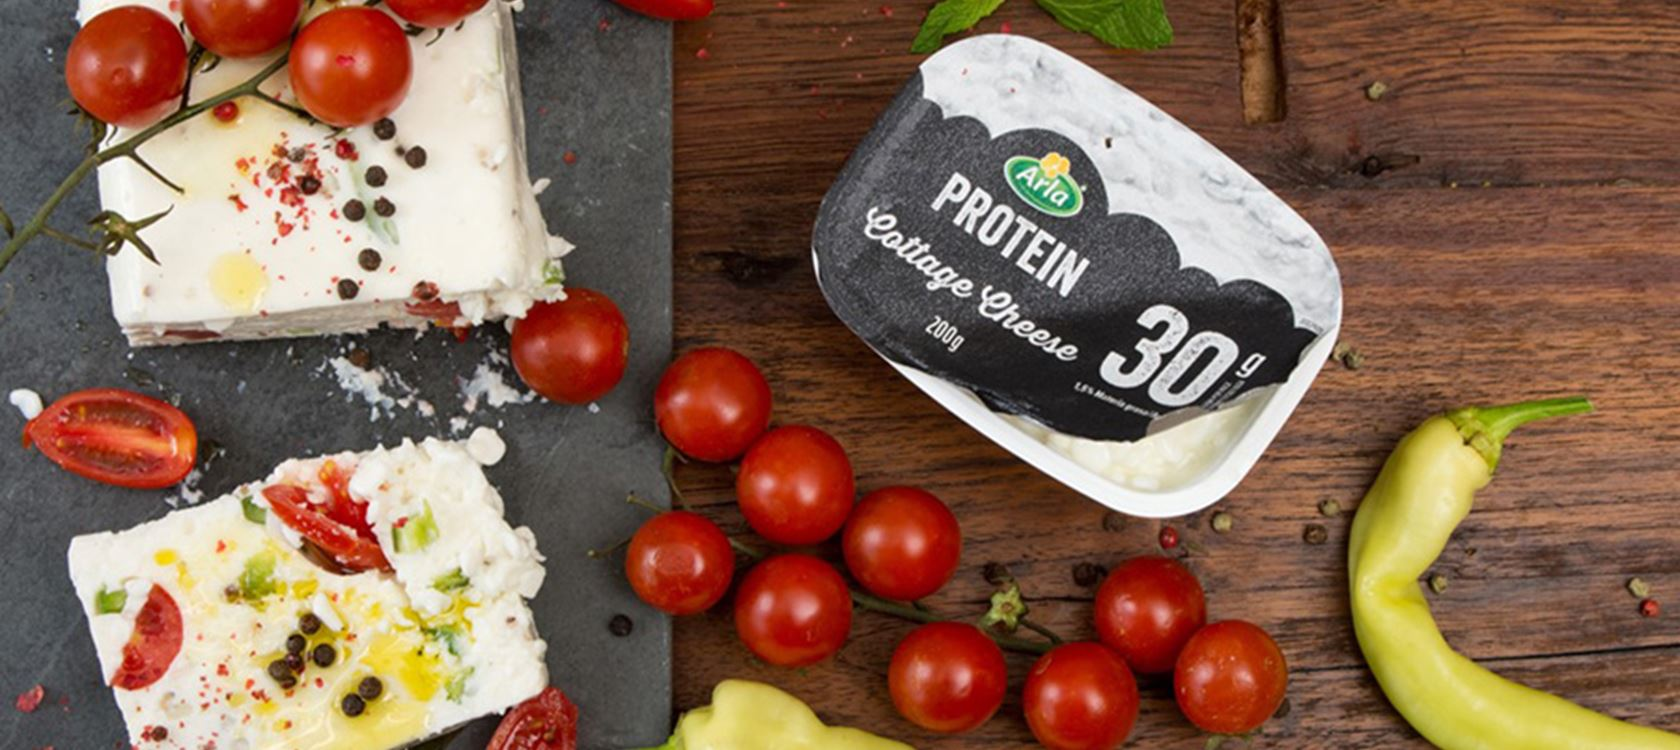 Κρέμα με Arla Protein cottage cheese